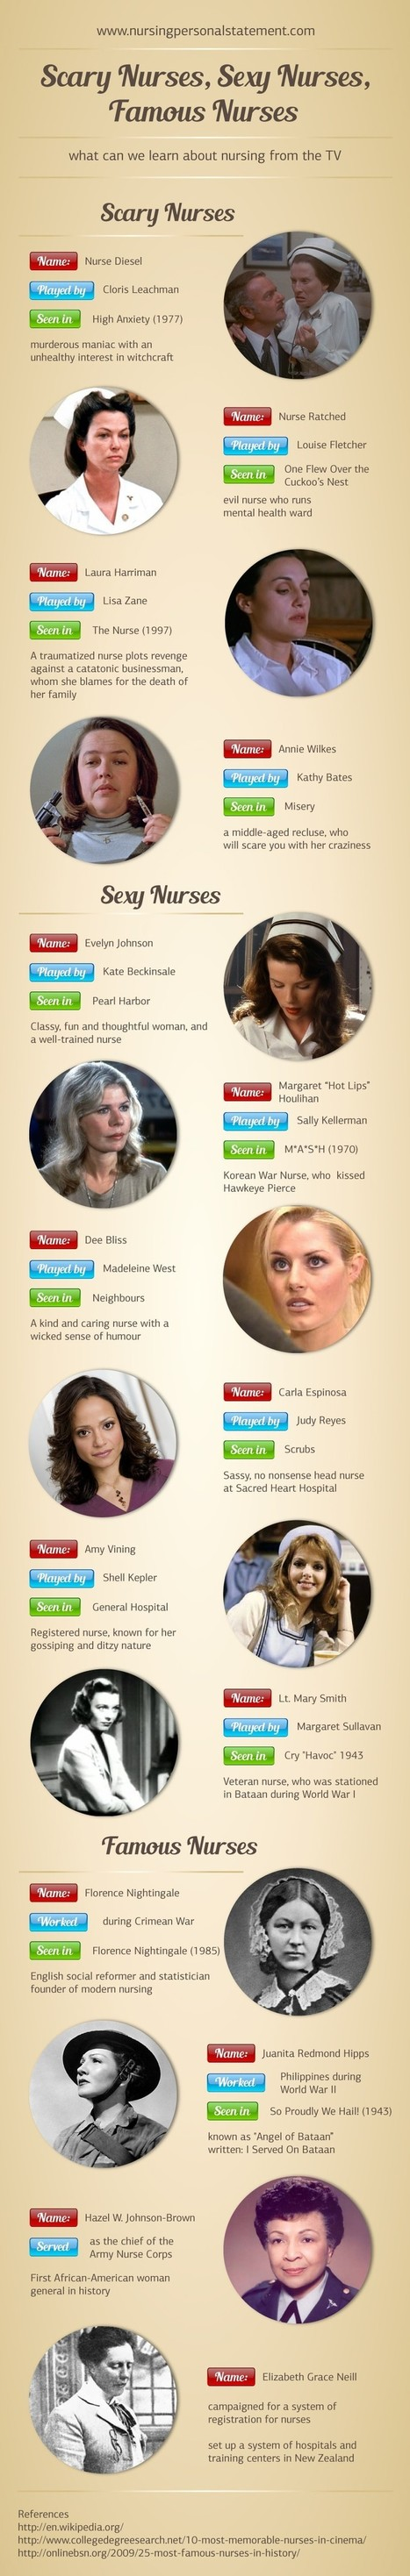 Famous, Sexy & Scary Nurses around the World | All Infographics | Scoop.it